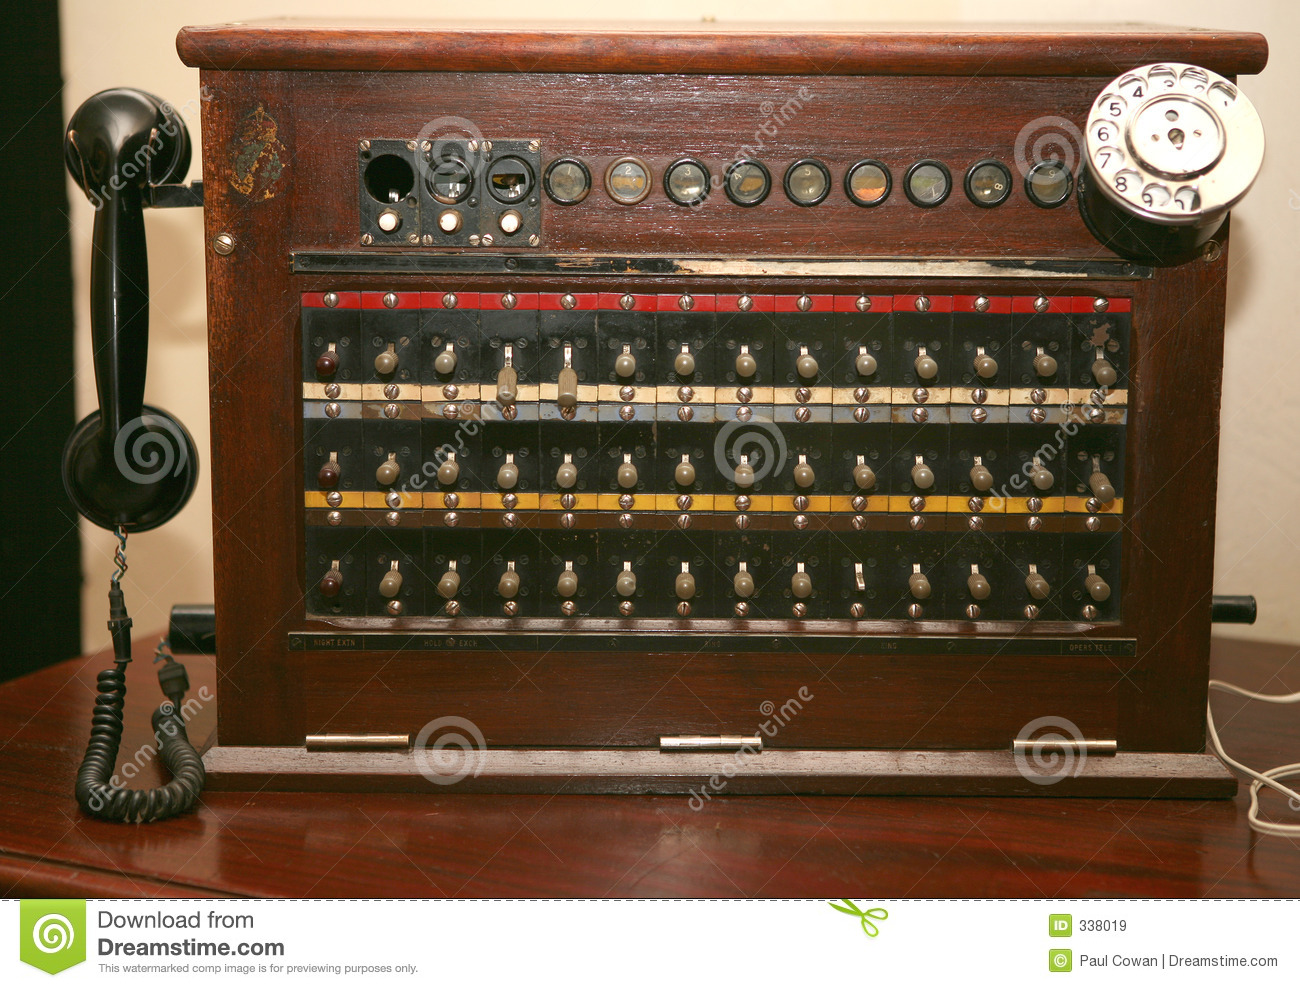 https://thumbs.dreamstime.com/z/antique-telephone-switchboard-338019.jpg